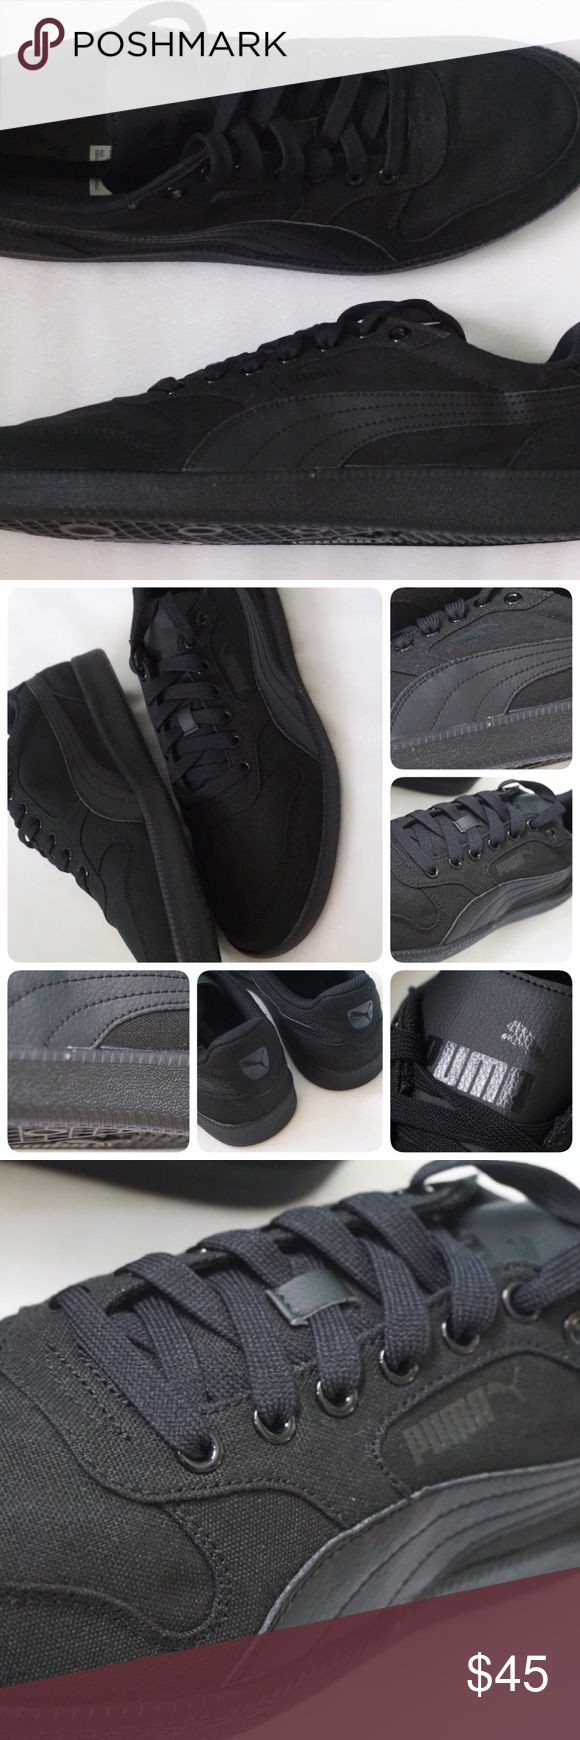 🆕LISTING PUMA ICRA TRAINER CV SIZE 13MEN -BRAND NEW IN BOX  -SIZE: 13MEN -COLOR: BLACK -MADE IN INDONESIA -INCLUDE ORIGINAL BOX WHEN SHIP   ⚠️⚠️⚠️PLEASE UNDERSTAND SOMETIME THE BOX POSSIBLY DAMAGED. IF YOU CONCERNED ABOUT THE BOX PLEASE ASK FIRST BEFORE PURCHASE. PLEASE PAY ATTENTION TO DETAILED OF SHOES OF THE PIC. THANKS ⚠️⚠️⚠️⚠️⚠️       ⭐️TOP RATED SELLER 👍FAST SHIPPER NEXT DAY SHIPPING ❌NO TRADE ❌NO PAYPAL ✅BUNDLE OFFER Puma Shoes Sneakers